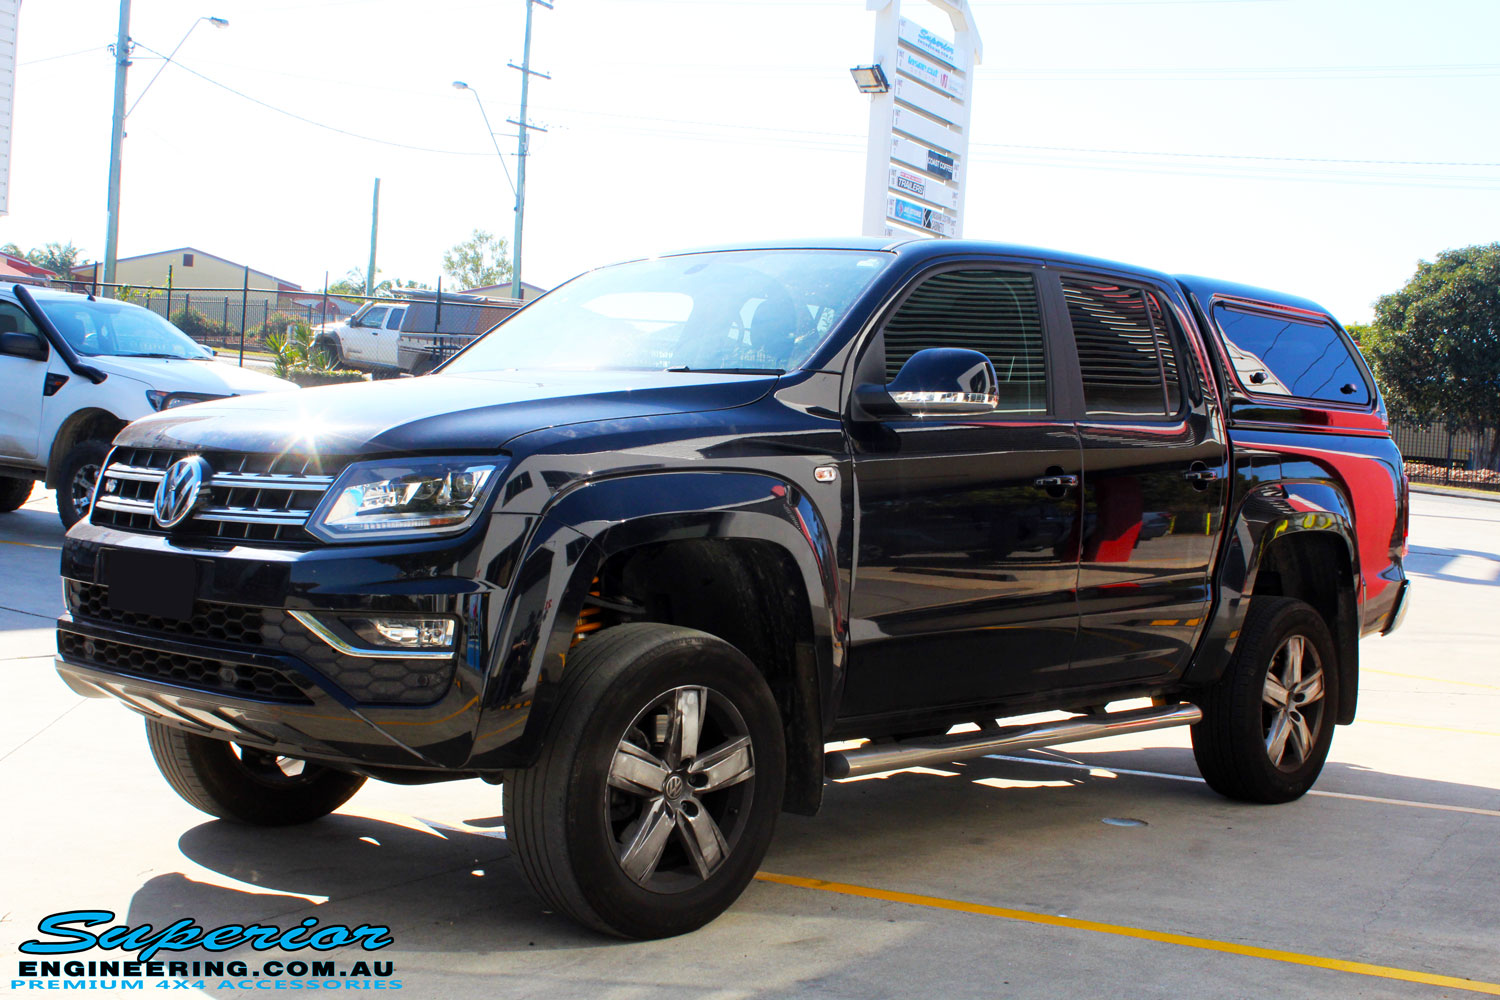 Left front side view of a Black Volkswagen Amarok Dual Cab after being fitted with a wide range of quality 4x4 Suspension and Accessories